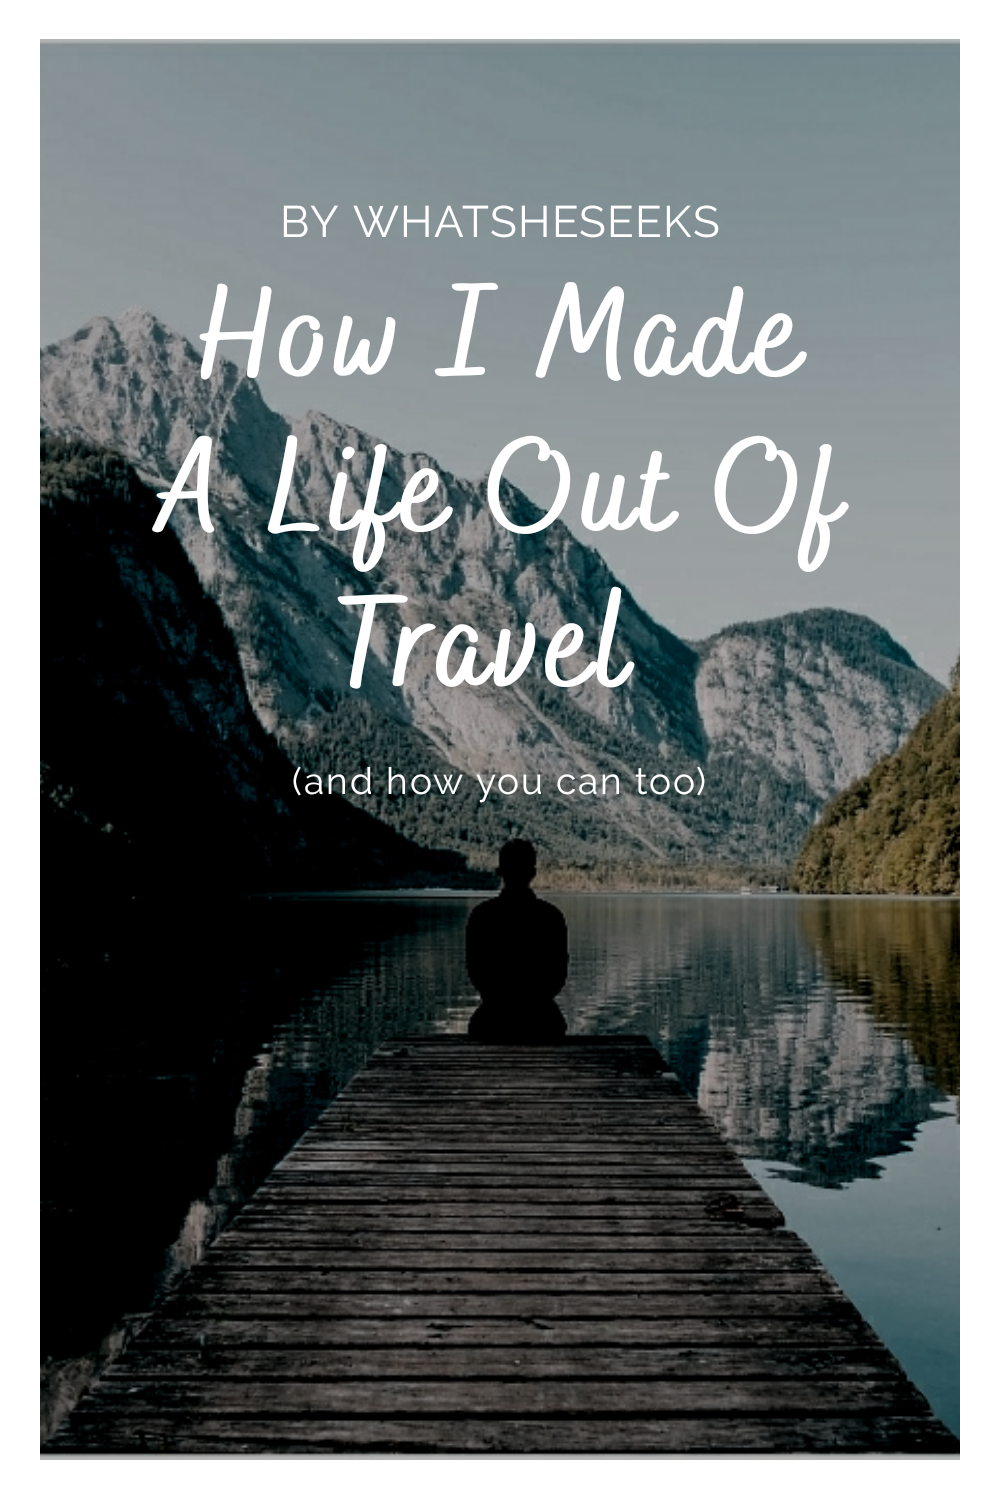 Have you thought about taking an extended holiday? Have you always wanted to work abroad but not sure how? Find inspiration and ideas for planning a longer term trip abroad. #whatsheseeks